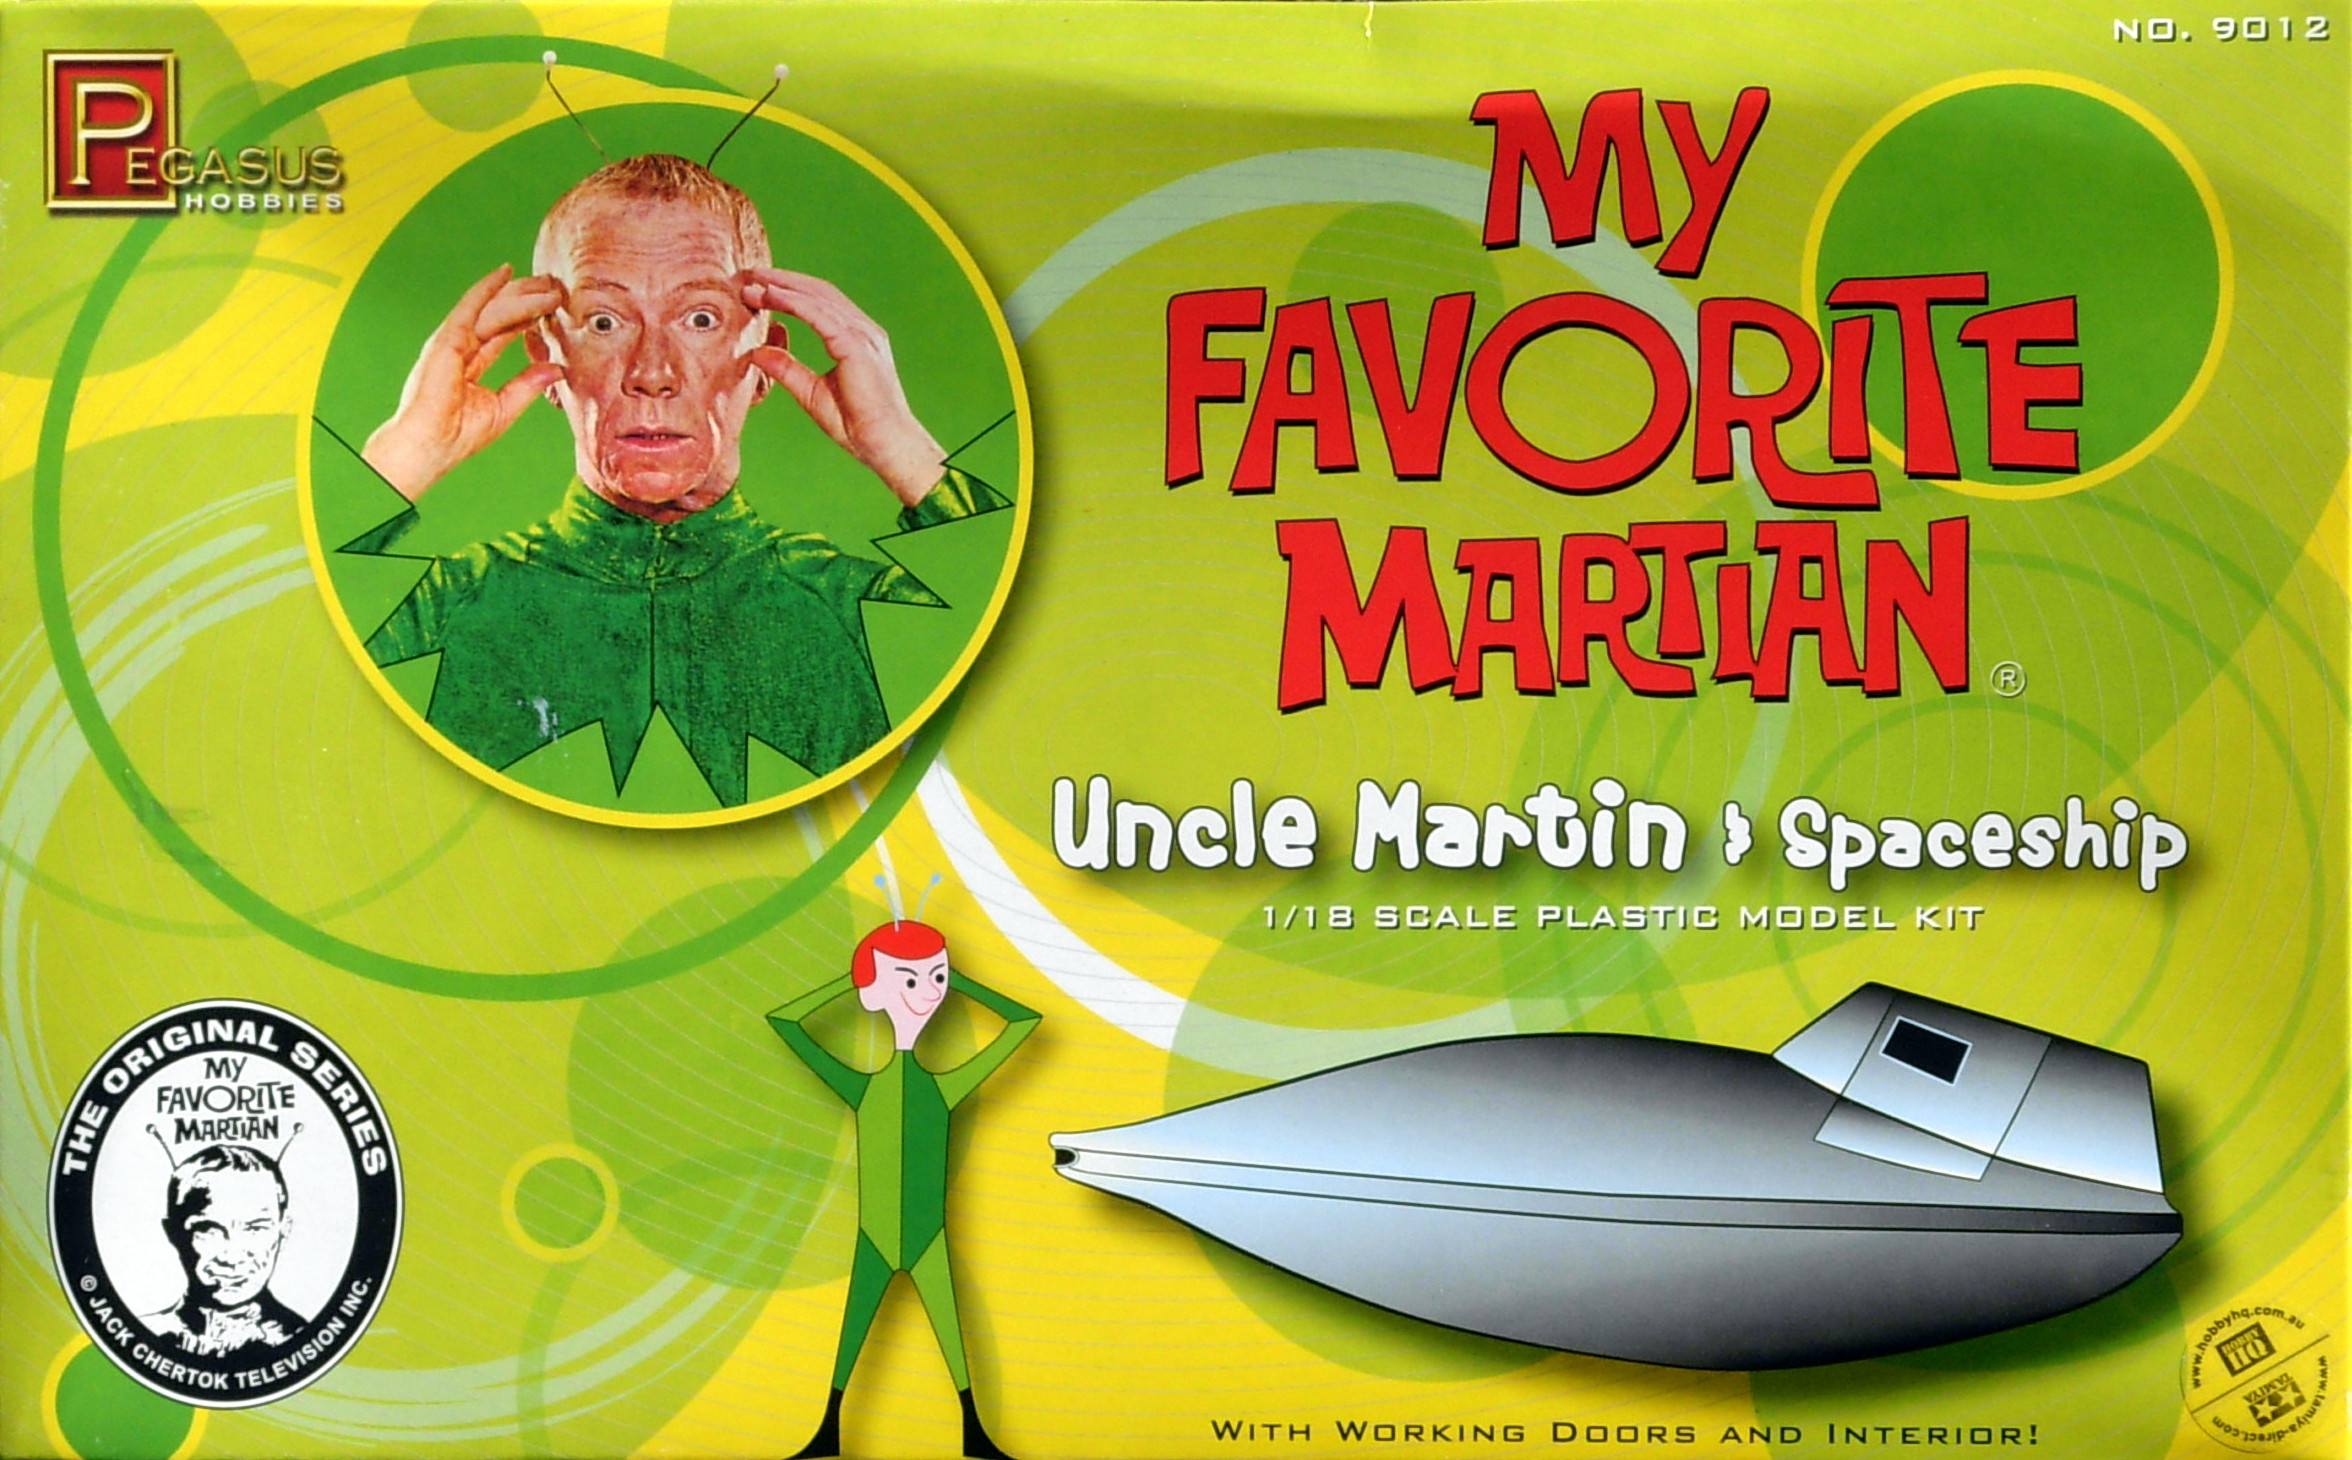 My Favorite Martian Spaceship with figure